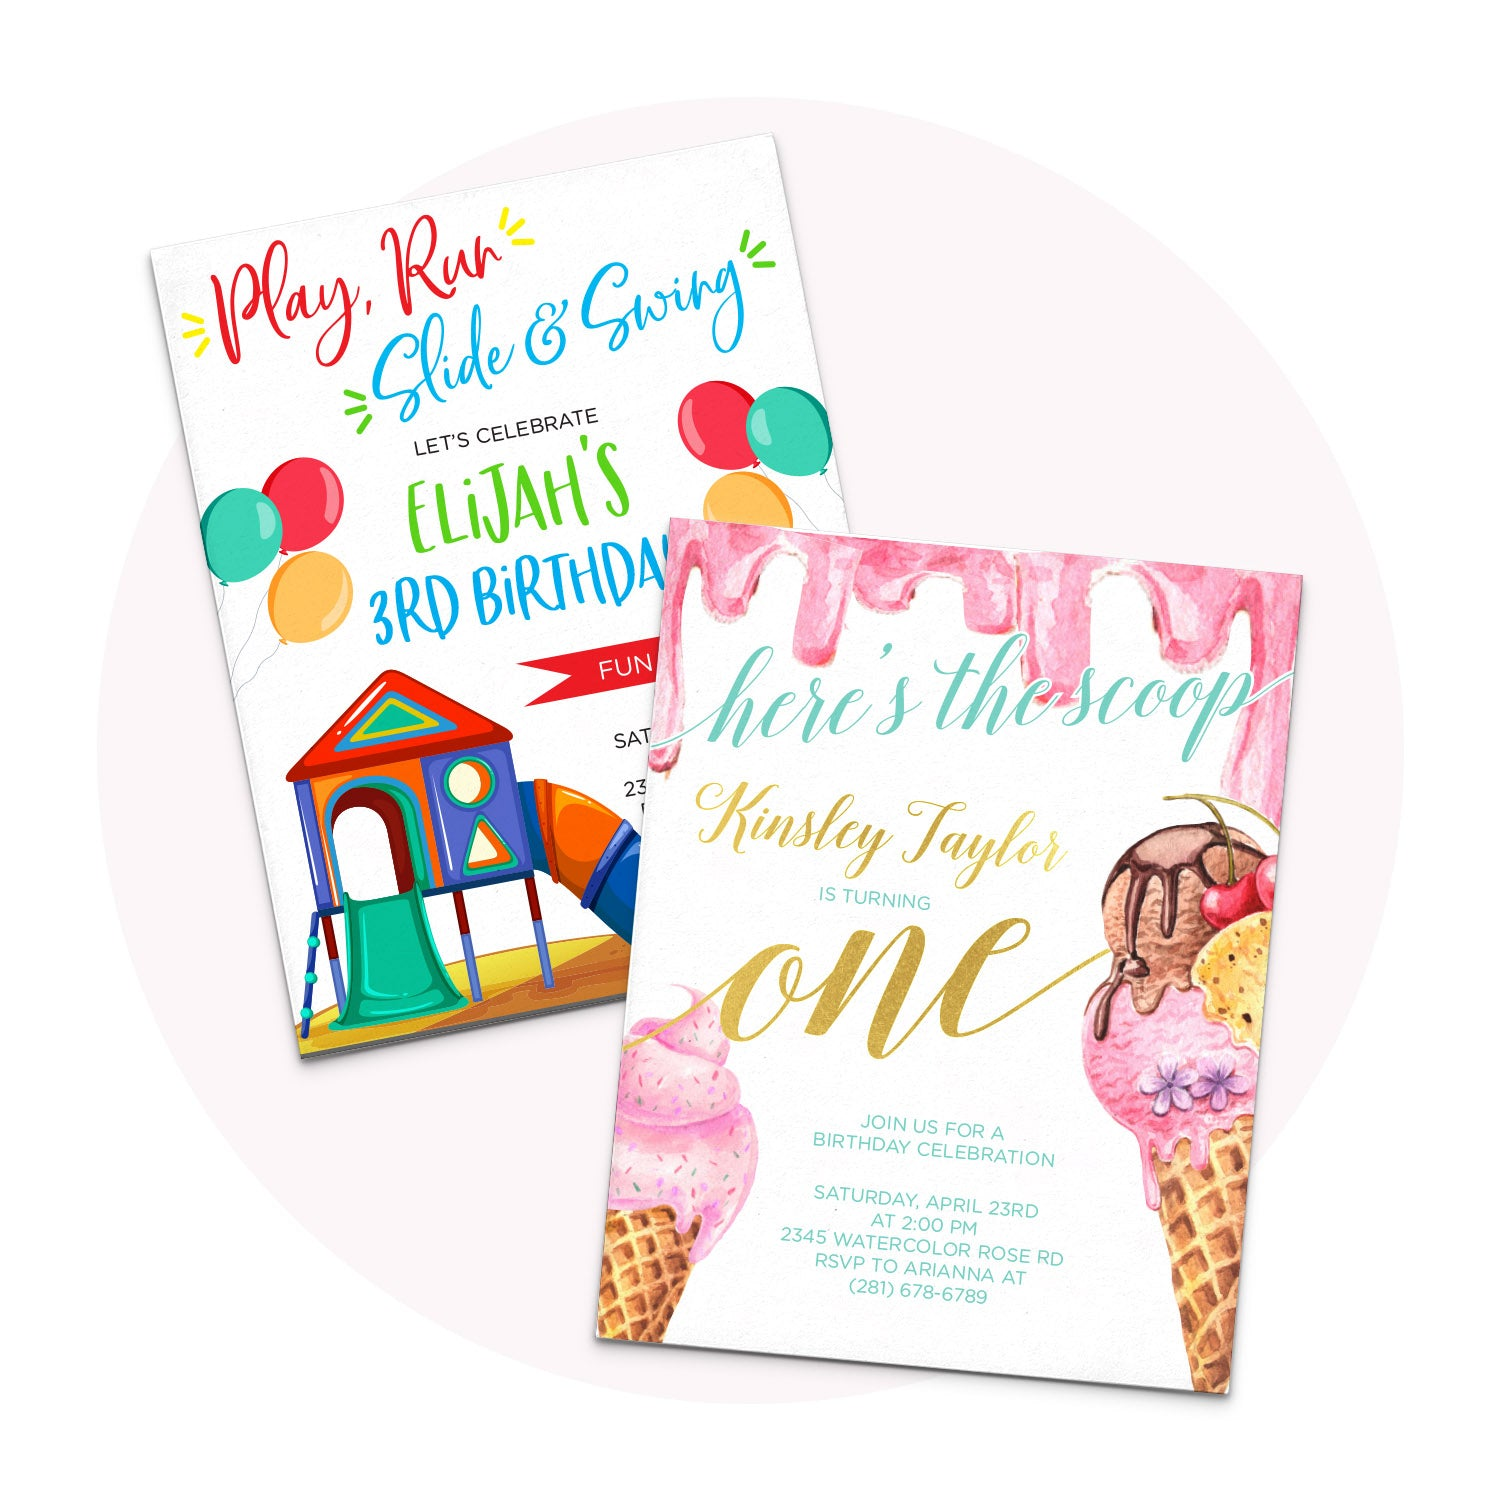 Personalized Birthday Invitations for Kids and Adults